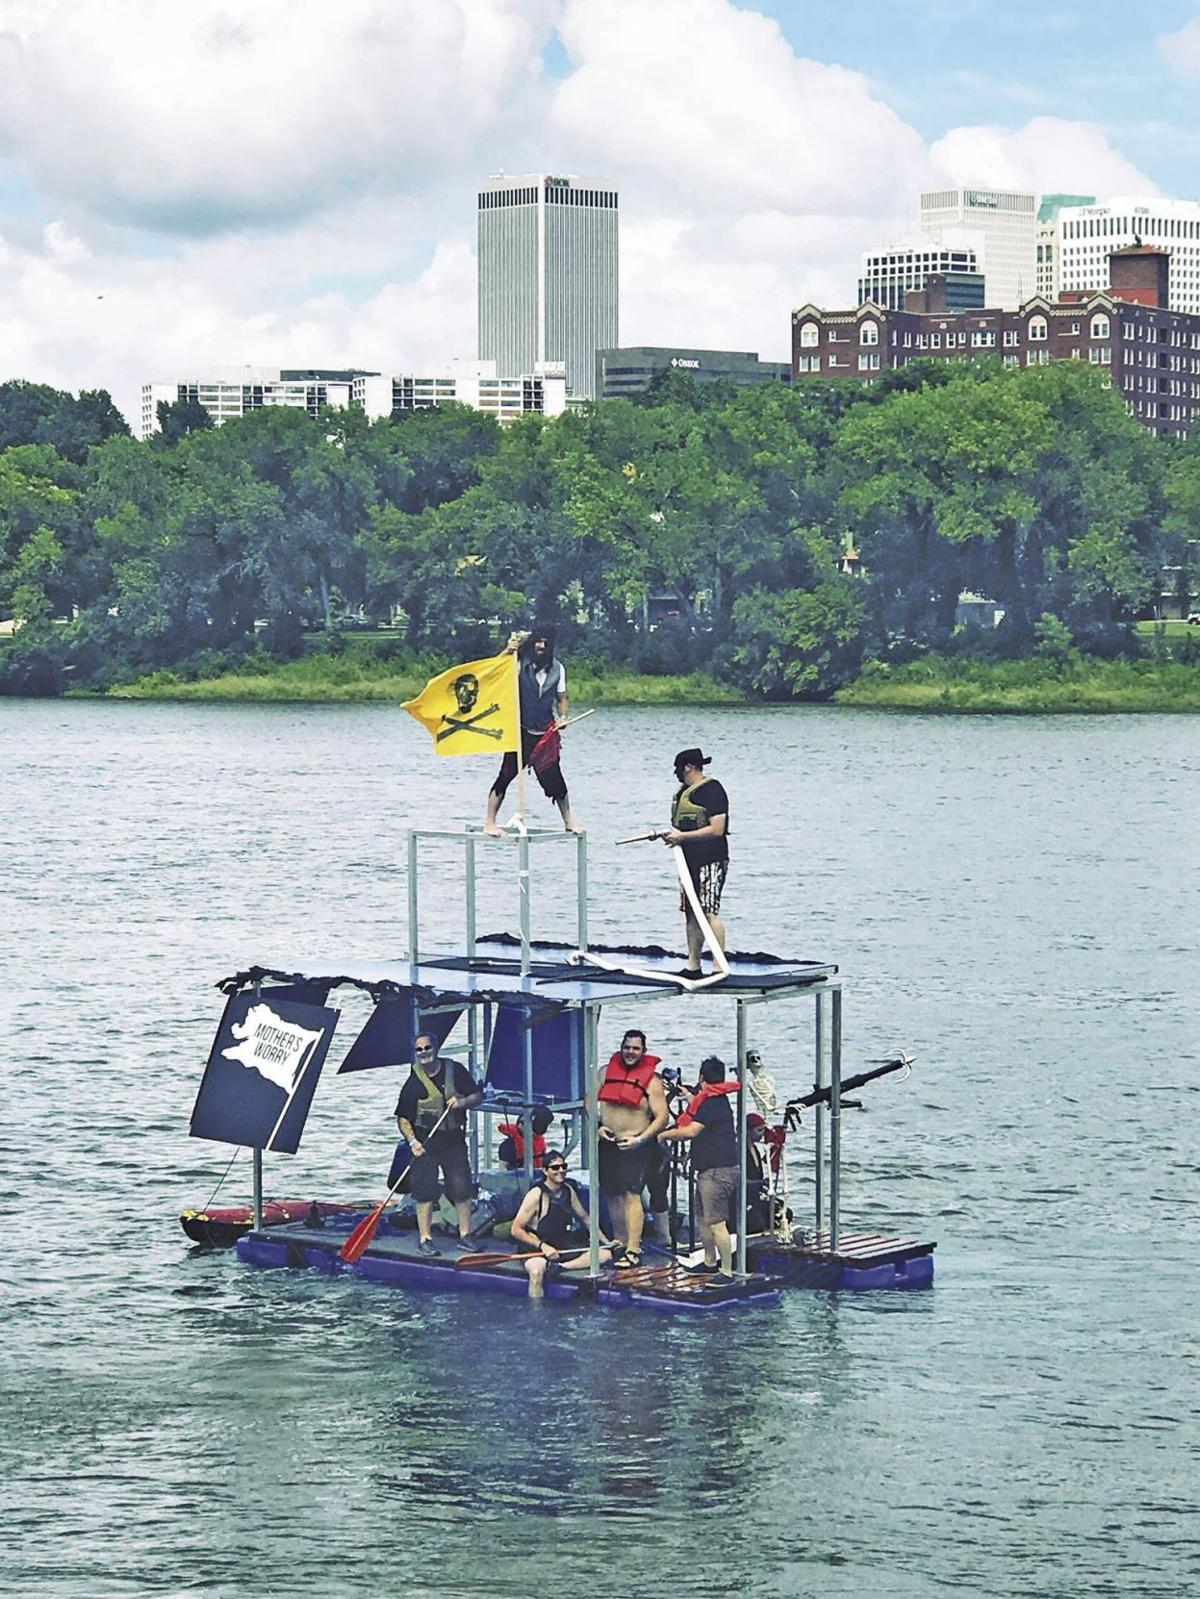 'Mother's Worry' sets sail with Collective crew